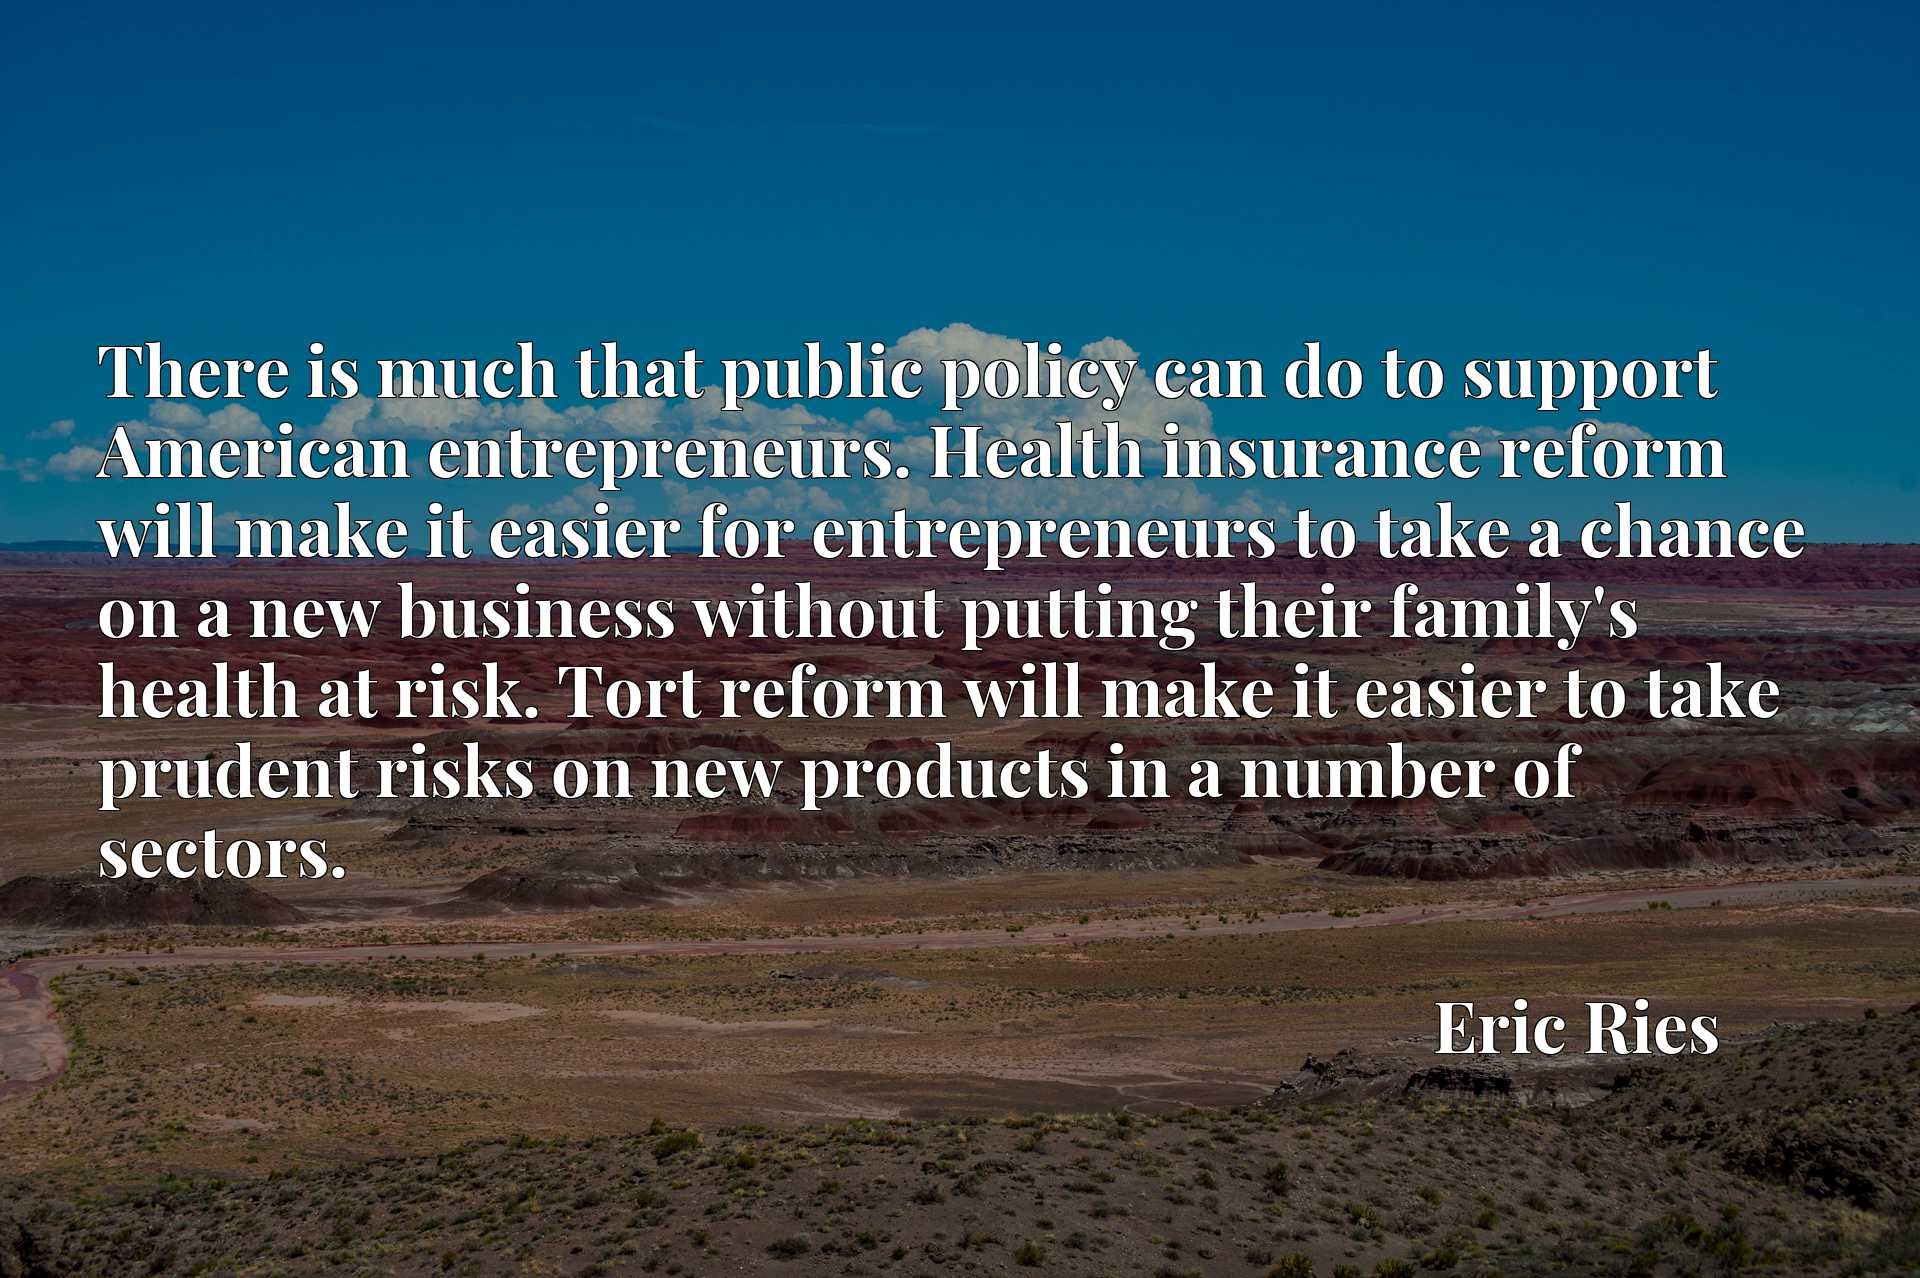 There is much that public policy can do to support American entrepreneurs. Health insurance reform will make it easier for entrepreneurs to take a chance on a new business without putting their family's health at risk. Tort reform will make it easier to take prudent risks on new products in a number of sectors.